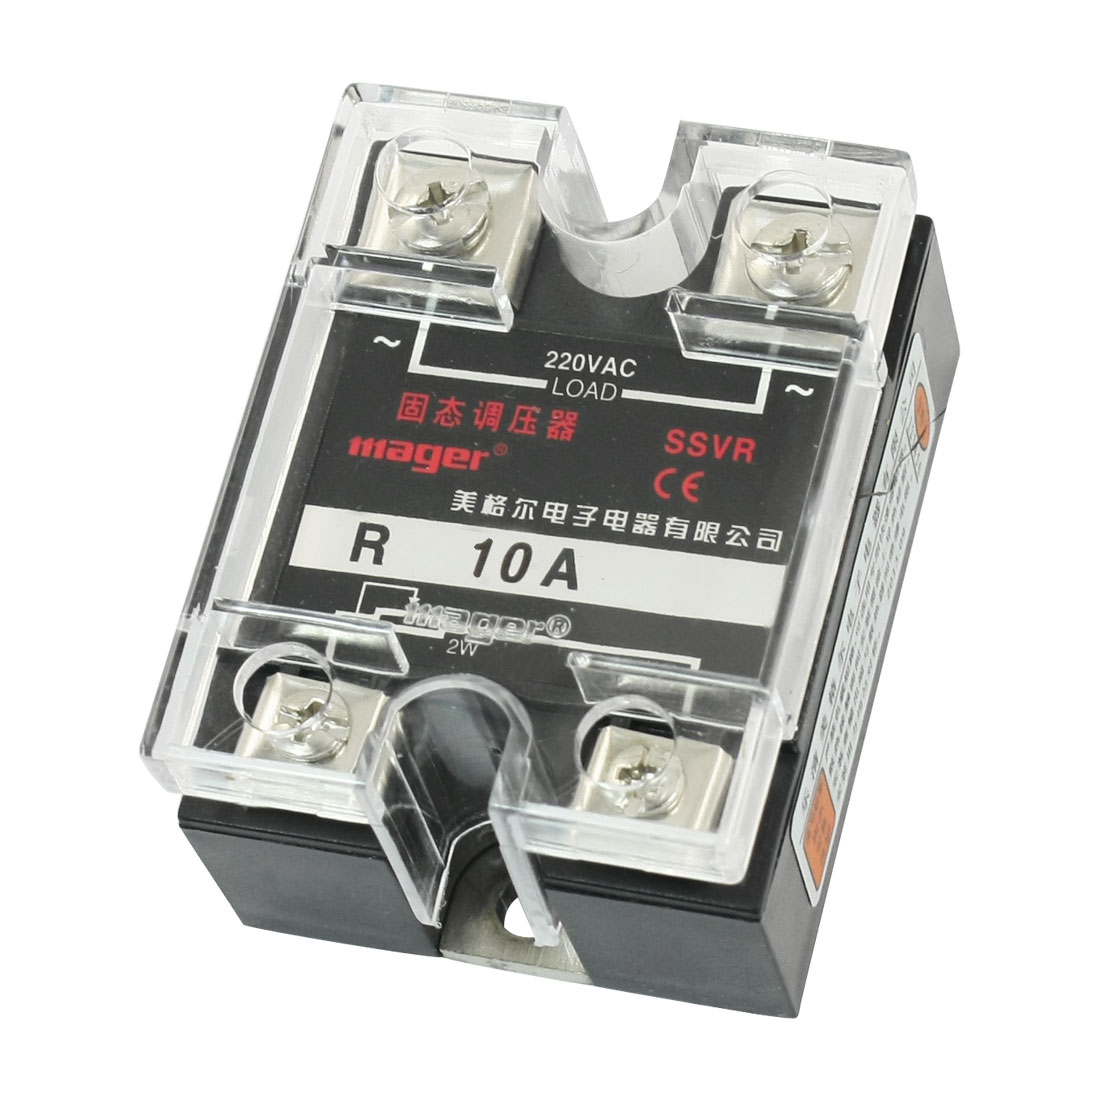 SSVR 220V 10A Slide Resistor to AC Solid State Module Relay w Clear Cover